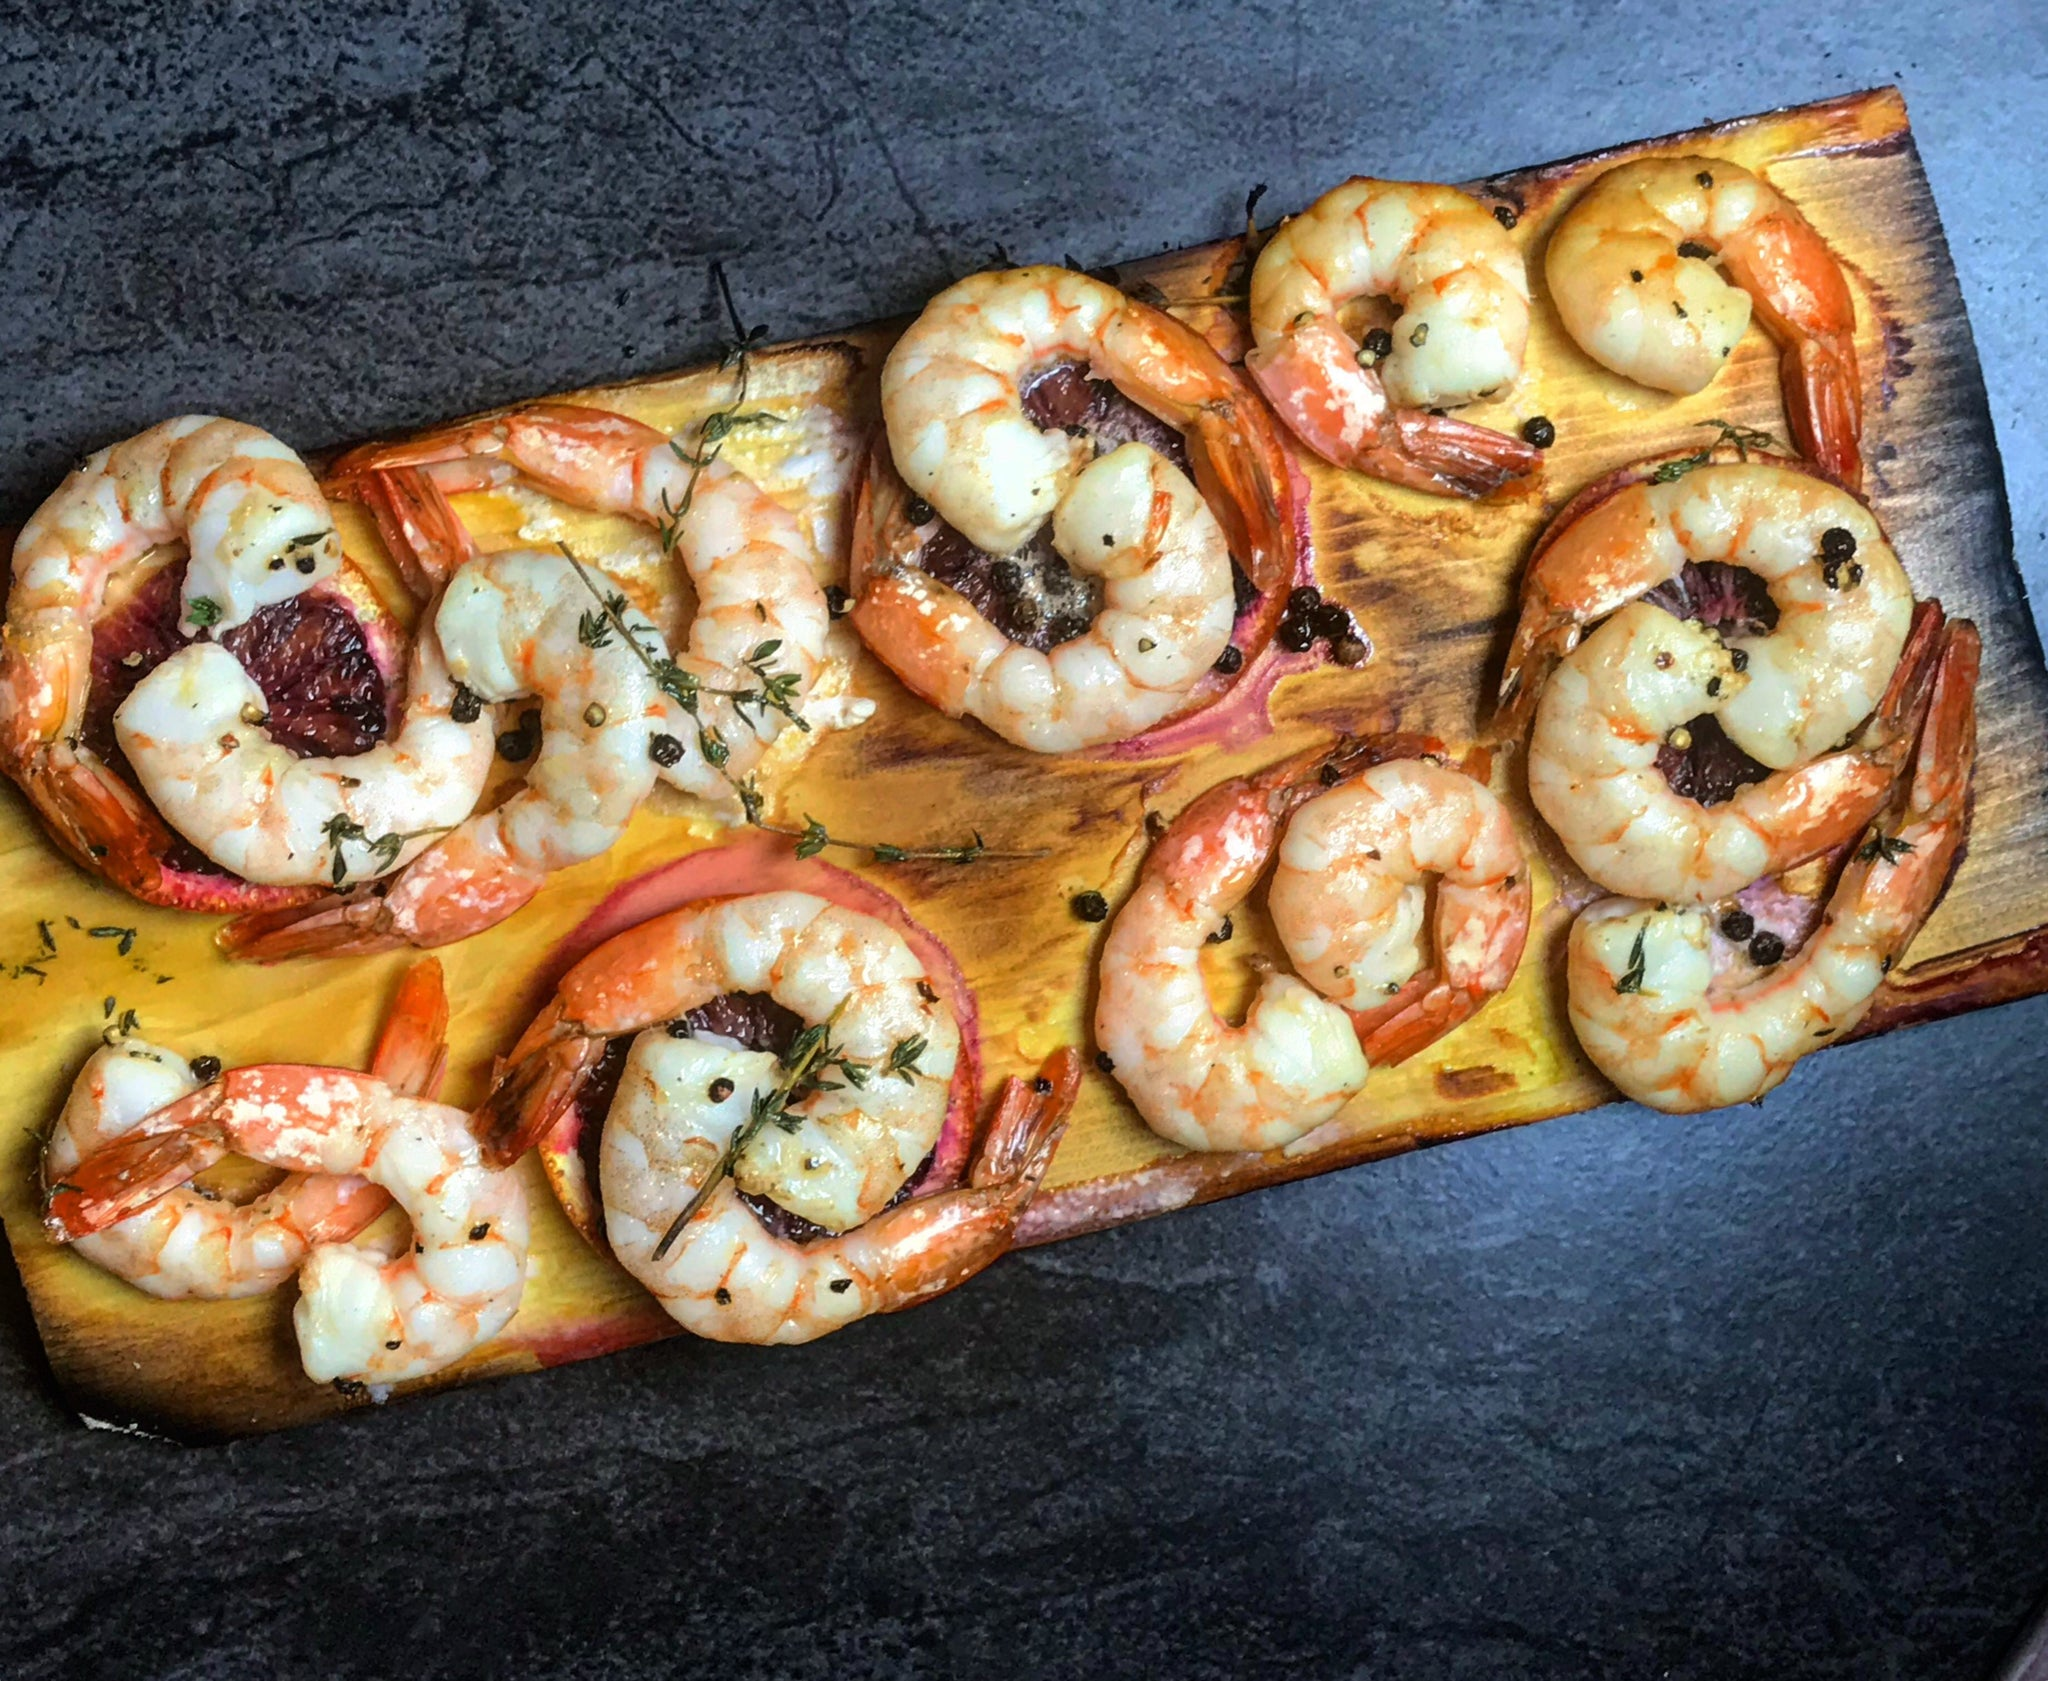 Chardonnay Infused Cedar Planked Shrimps with Blood Orange and Peppercorns